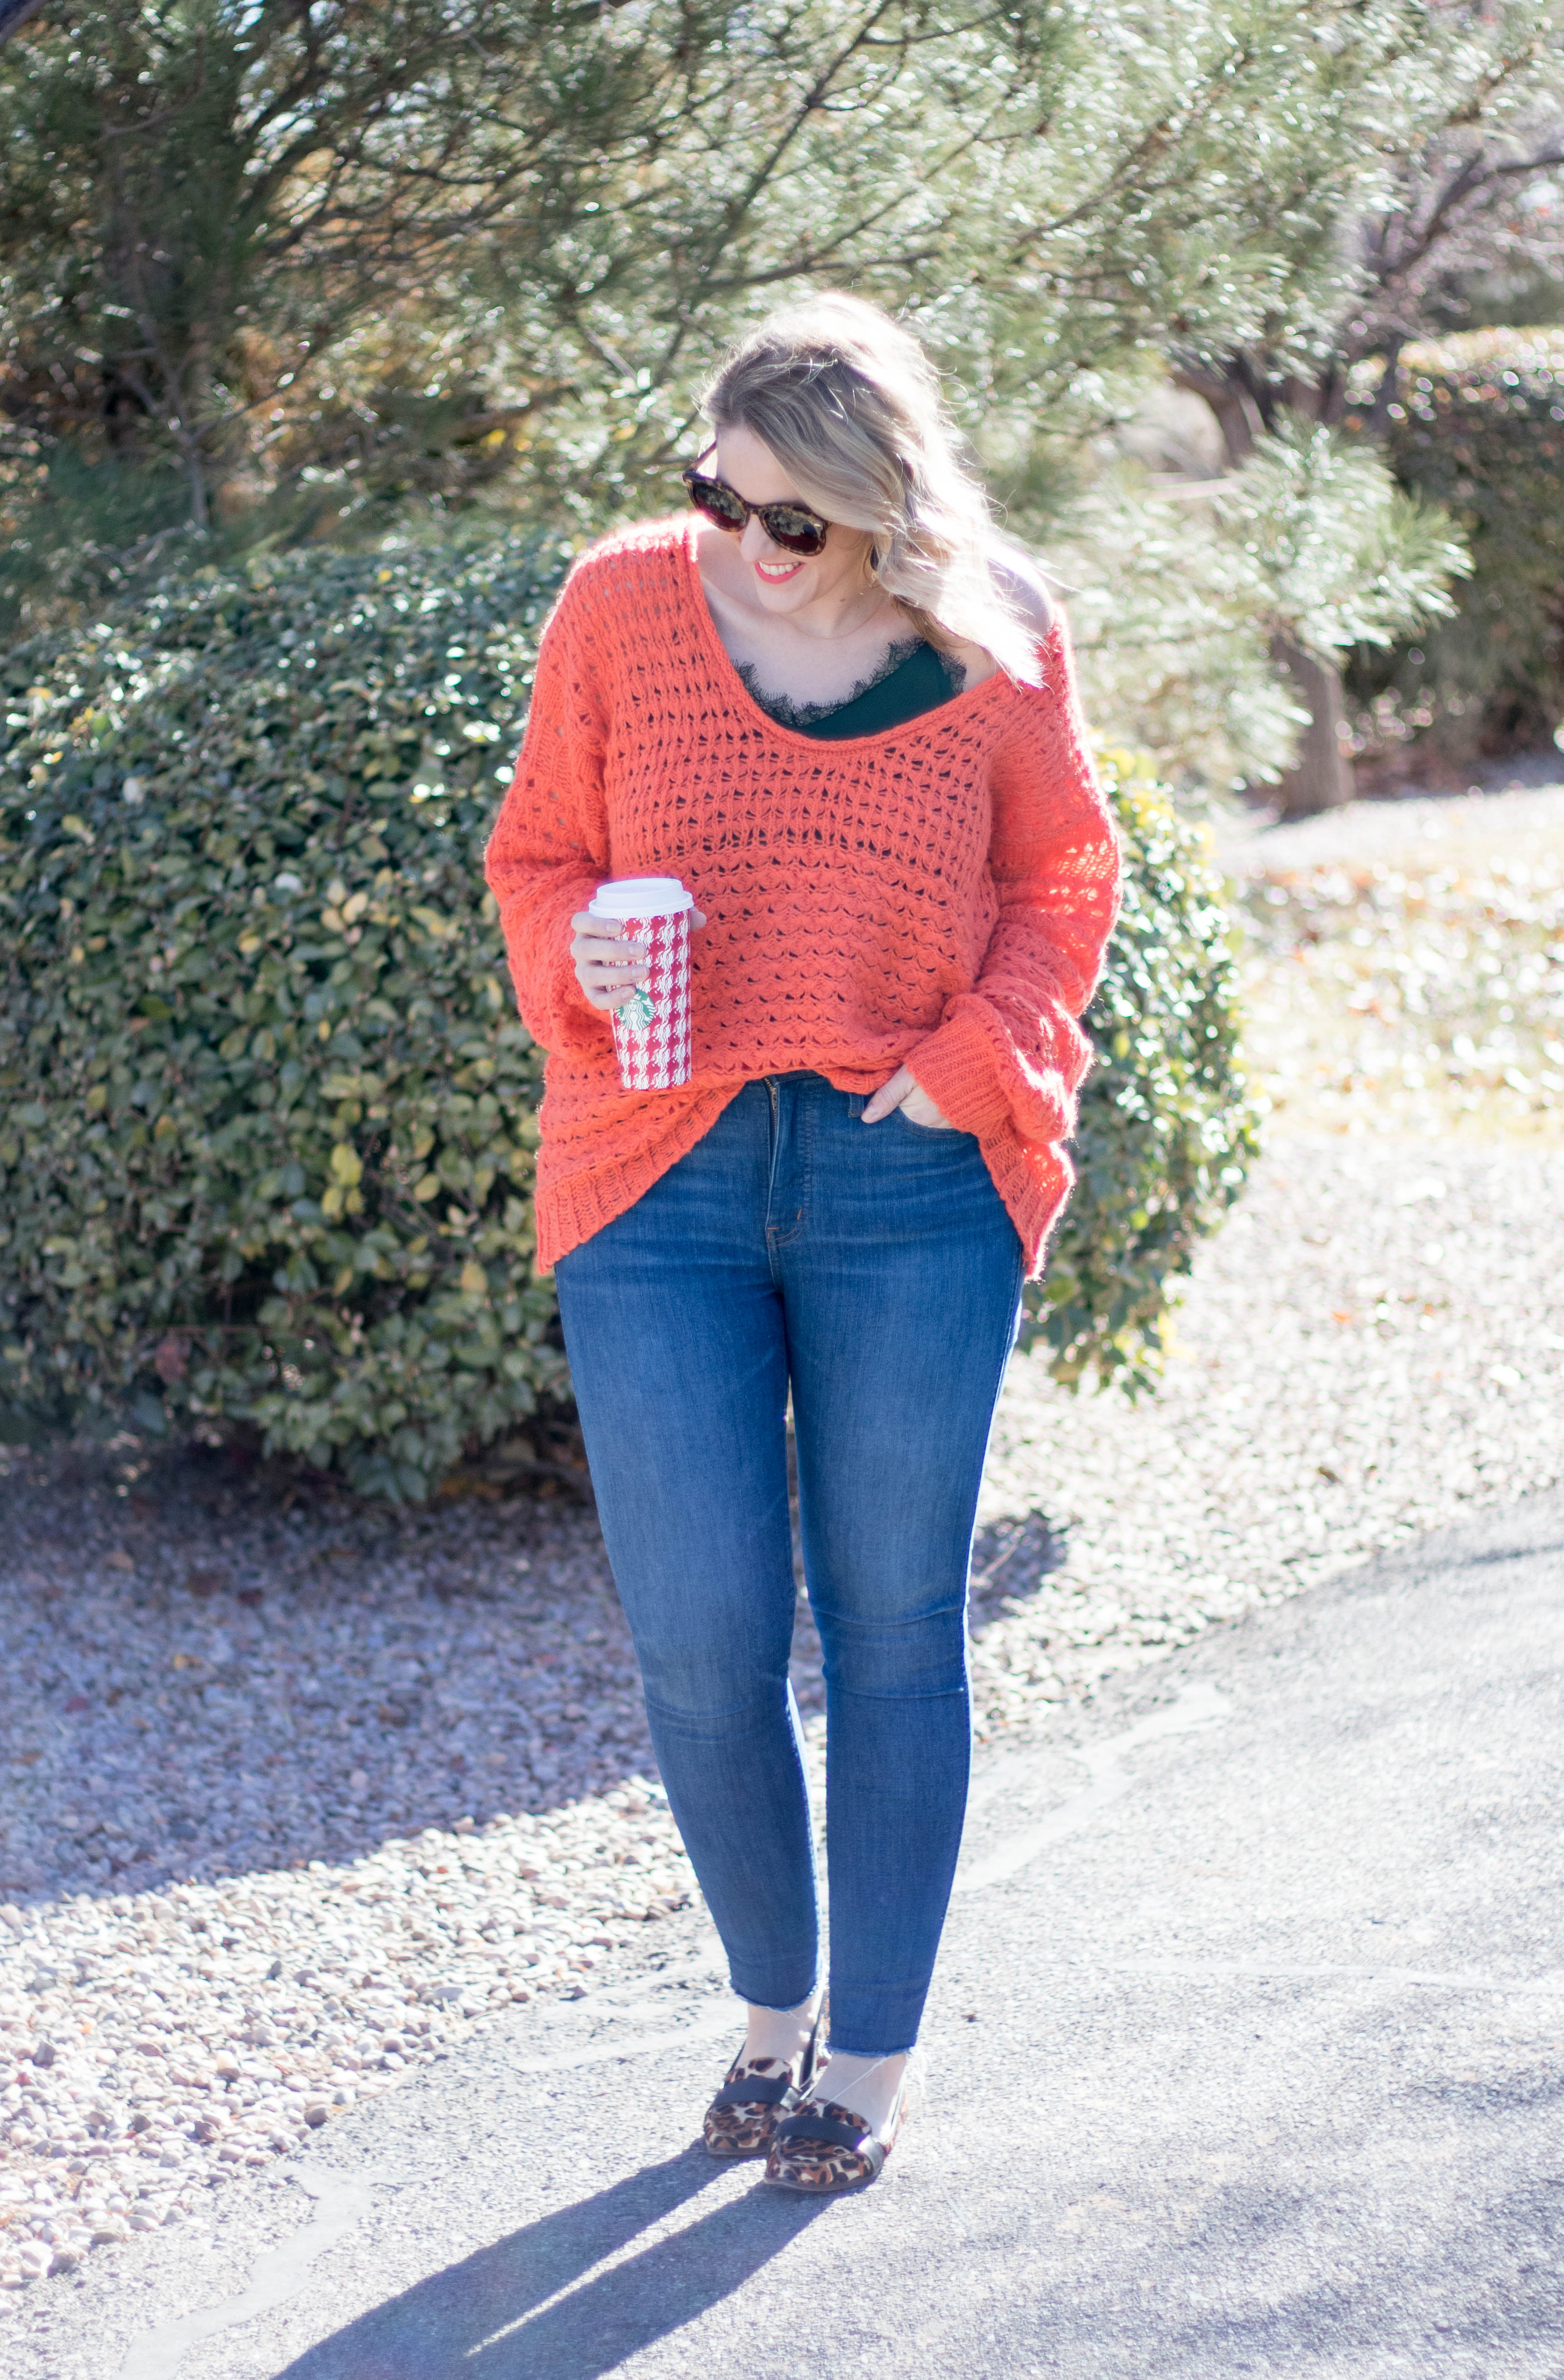 free people chunky sweater #freepeople #chunkysweater #holidaystyle